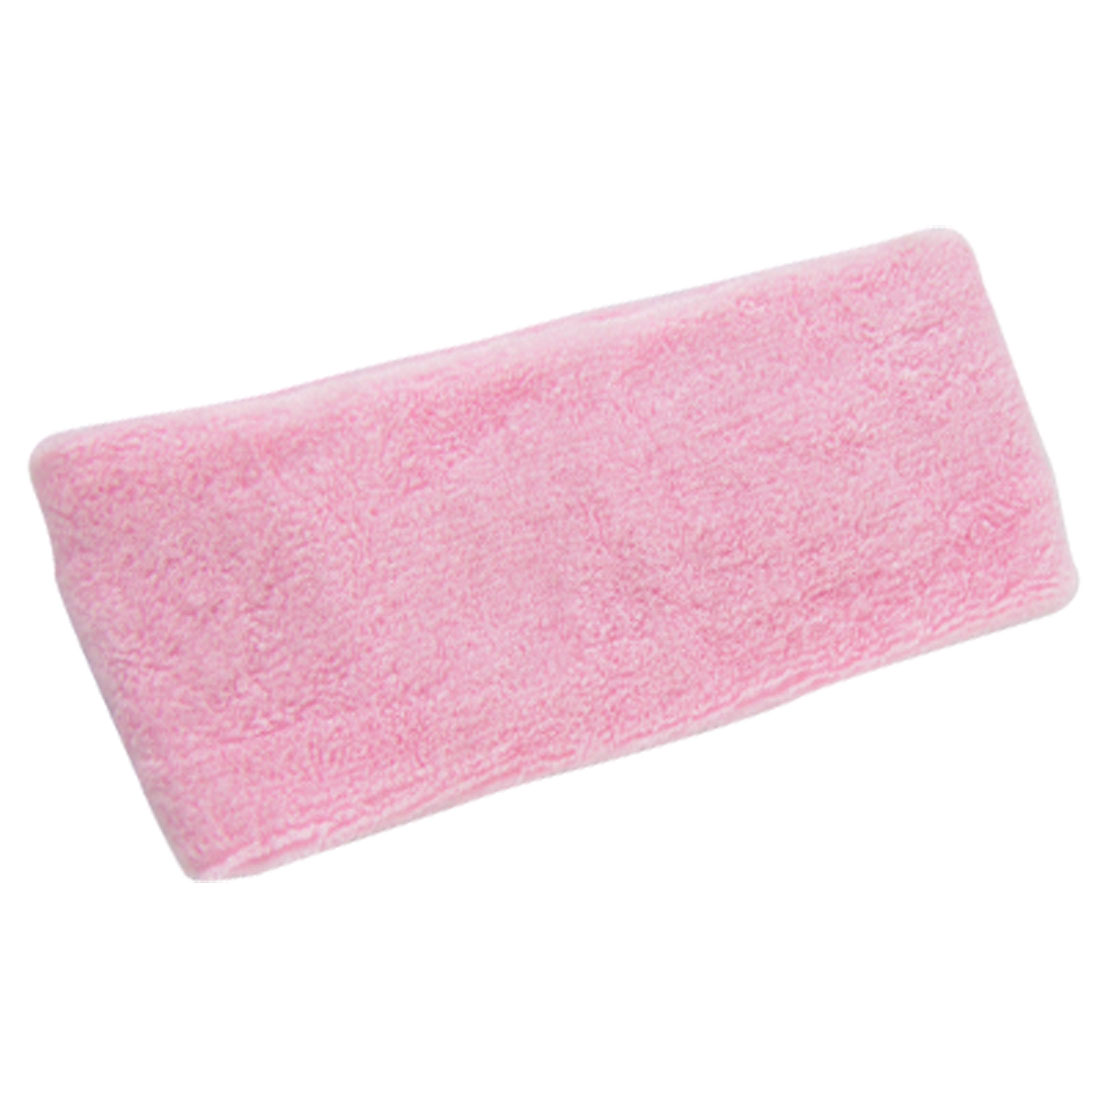 Athletic Sports Soft Elastic Sweatband Sports Head Band Pink